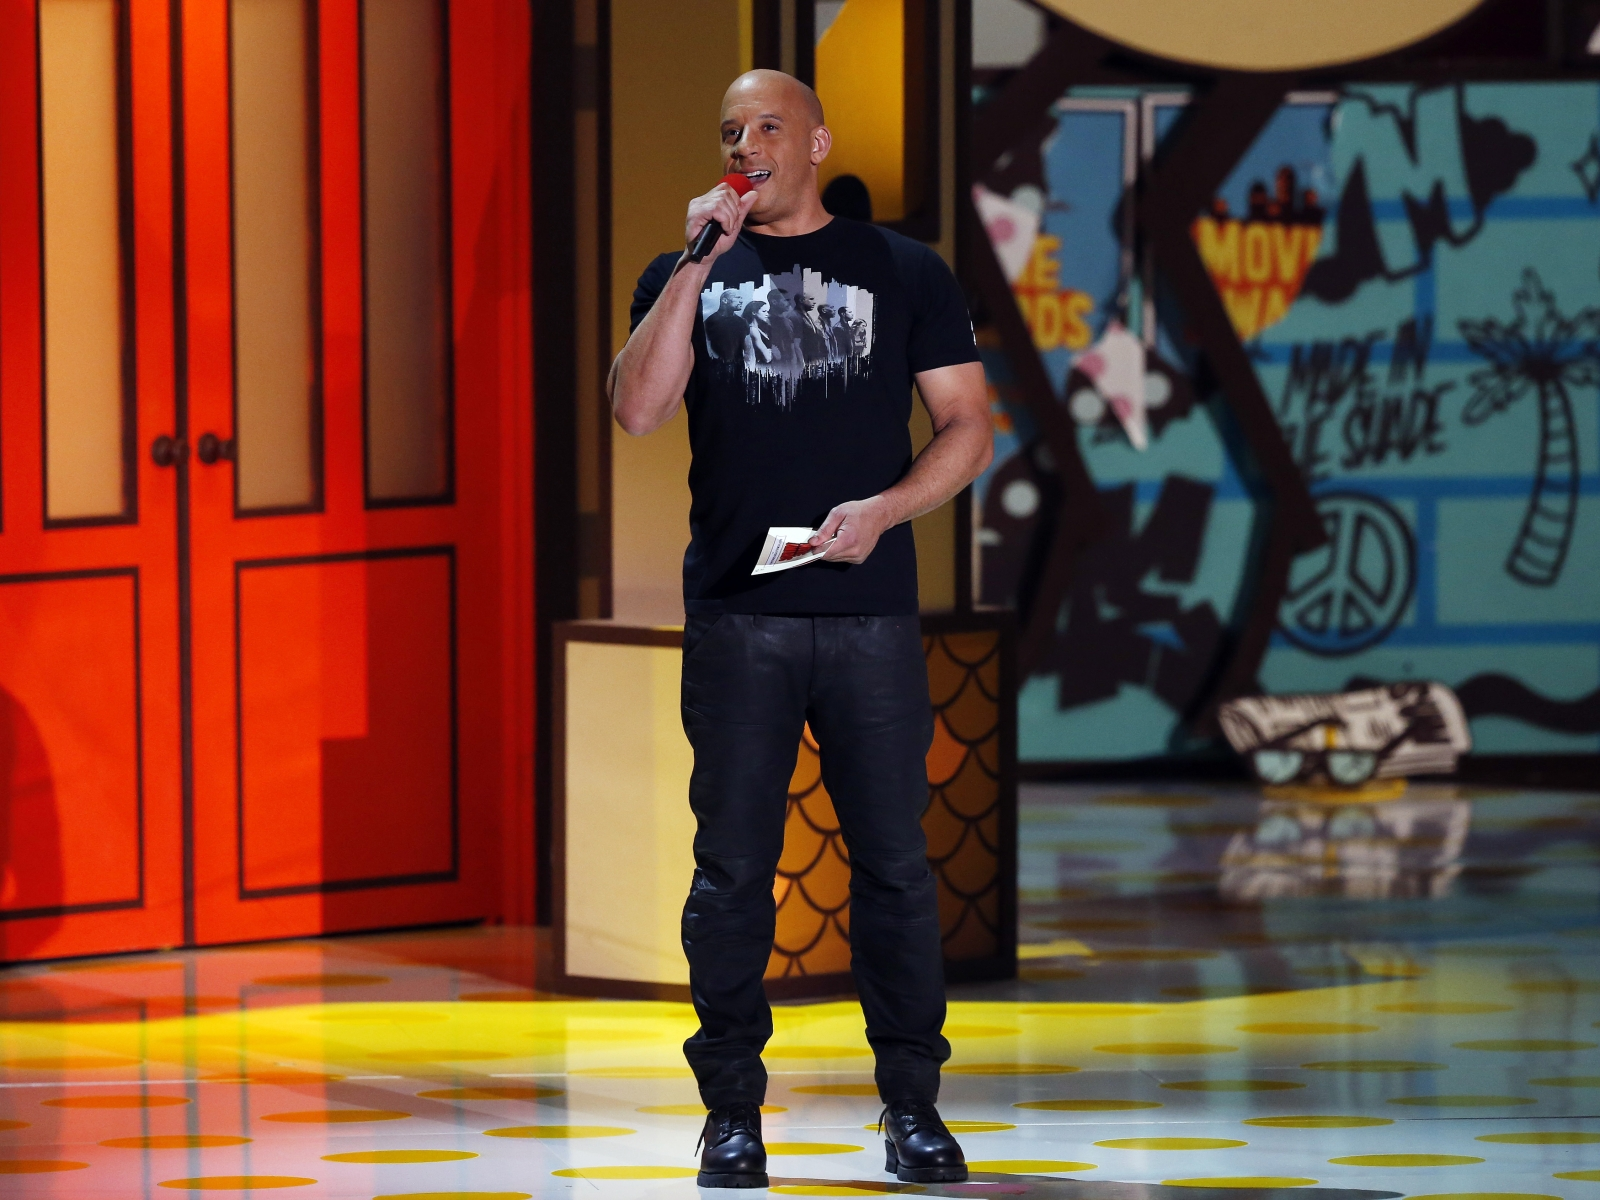 Vin Diesel at the MTV Movie Awards